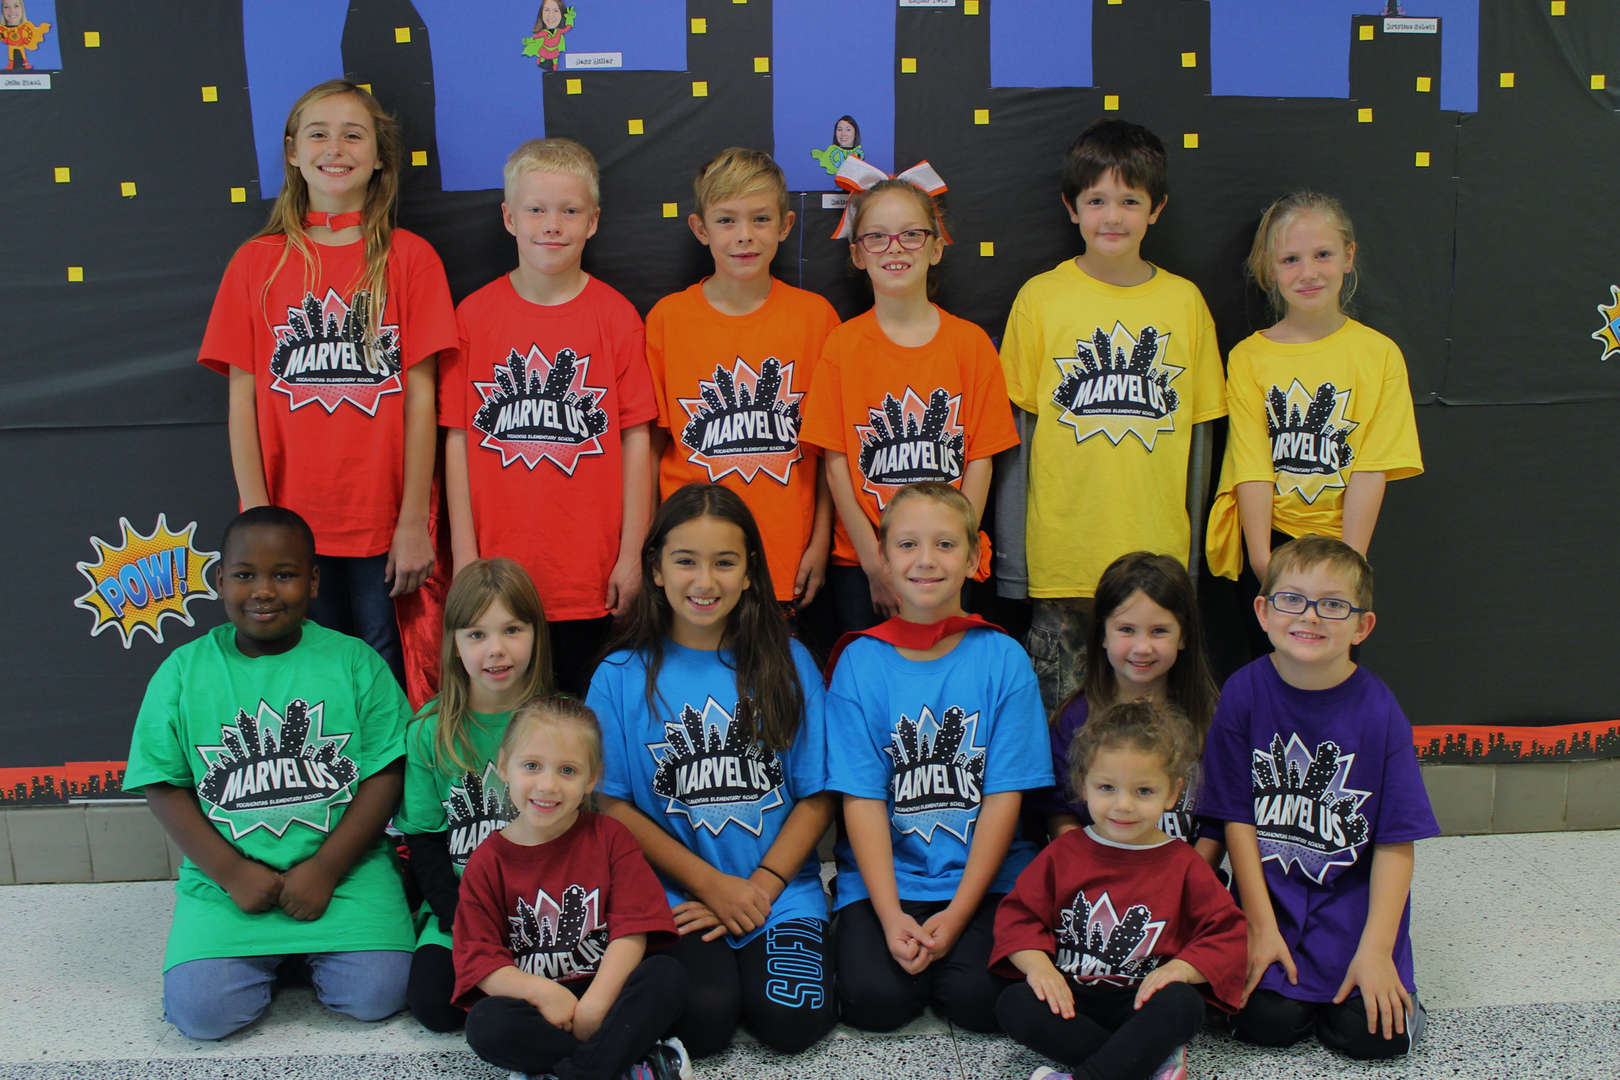 Students wearing grade level team shirts